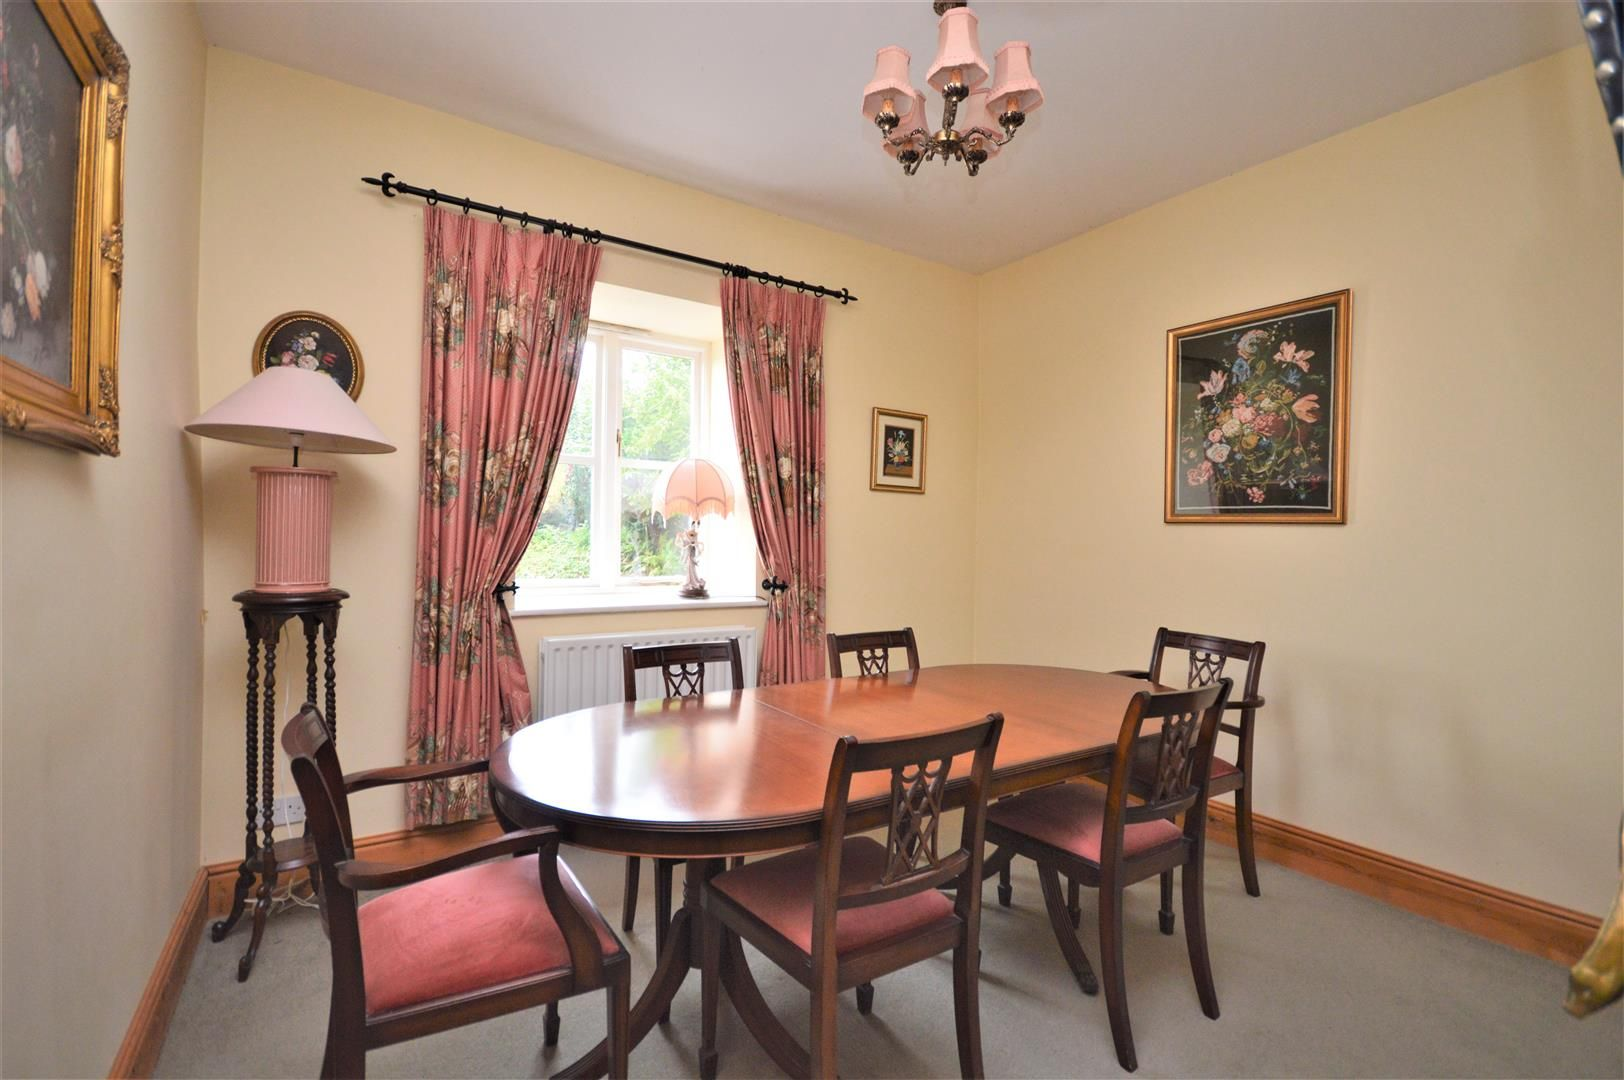 4 bed semi-detached for sale in Nr Madley  - Property Image 8